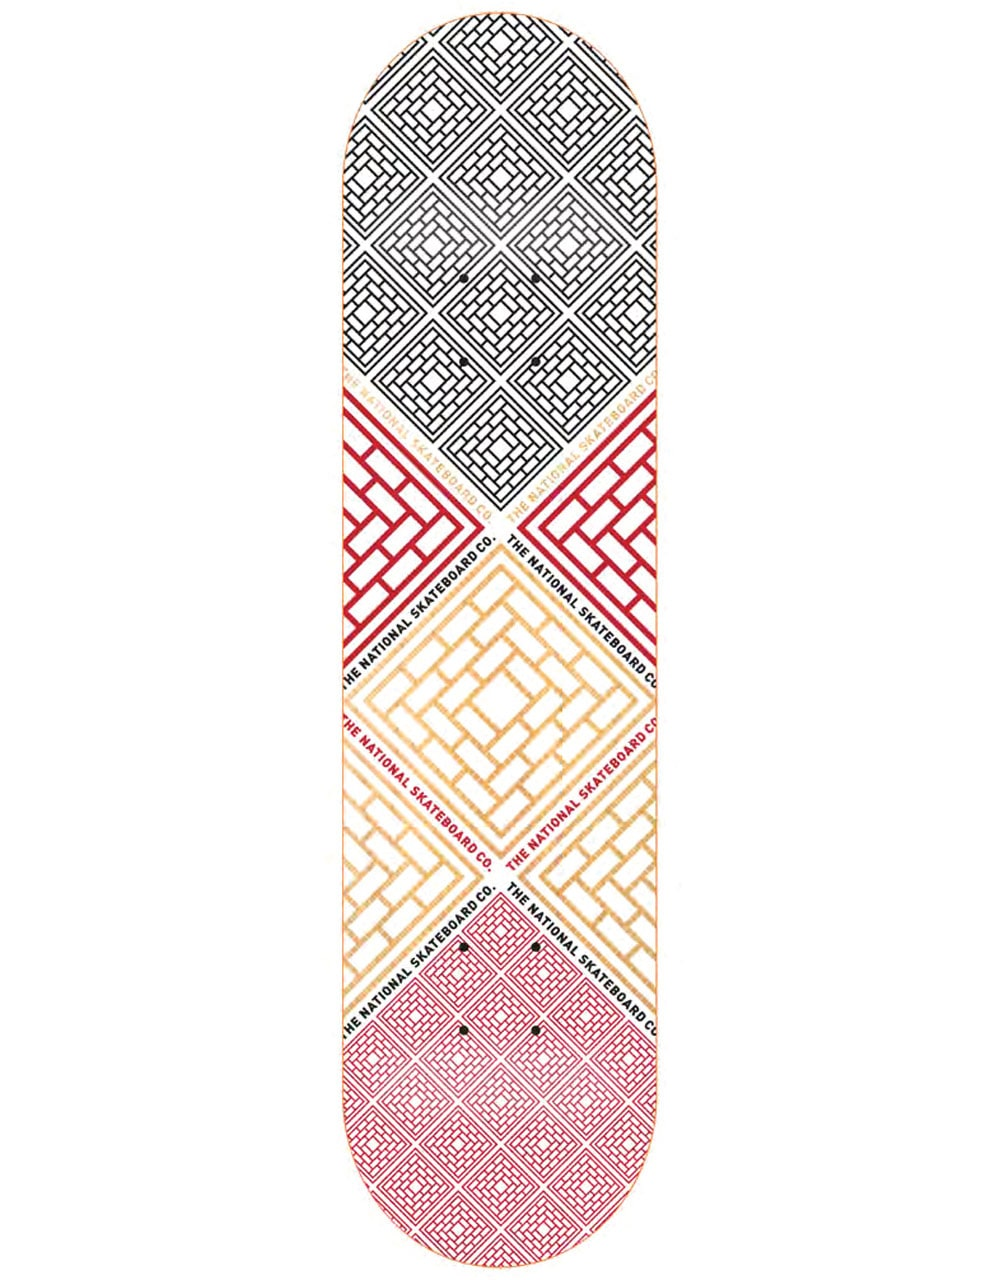 f49edfcf641f The National Skateboard Co. Labyrinth A Skateboard Deck - 8.38